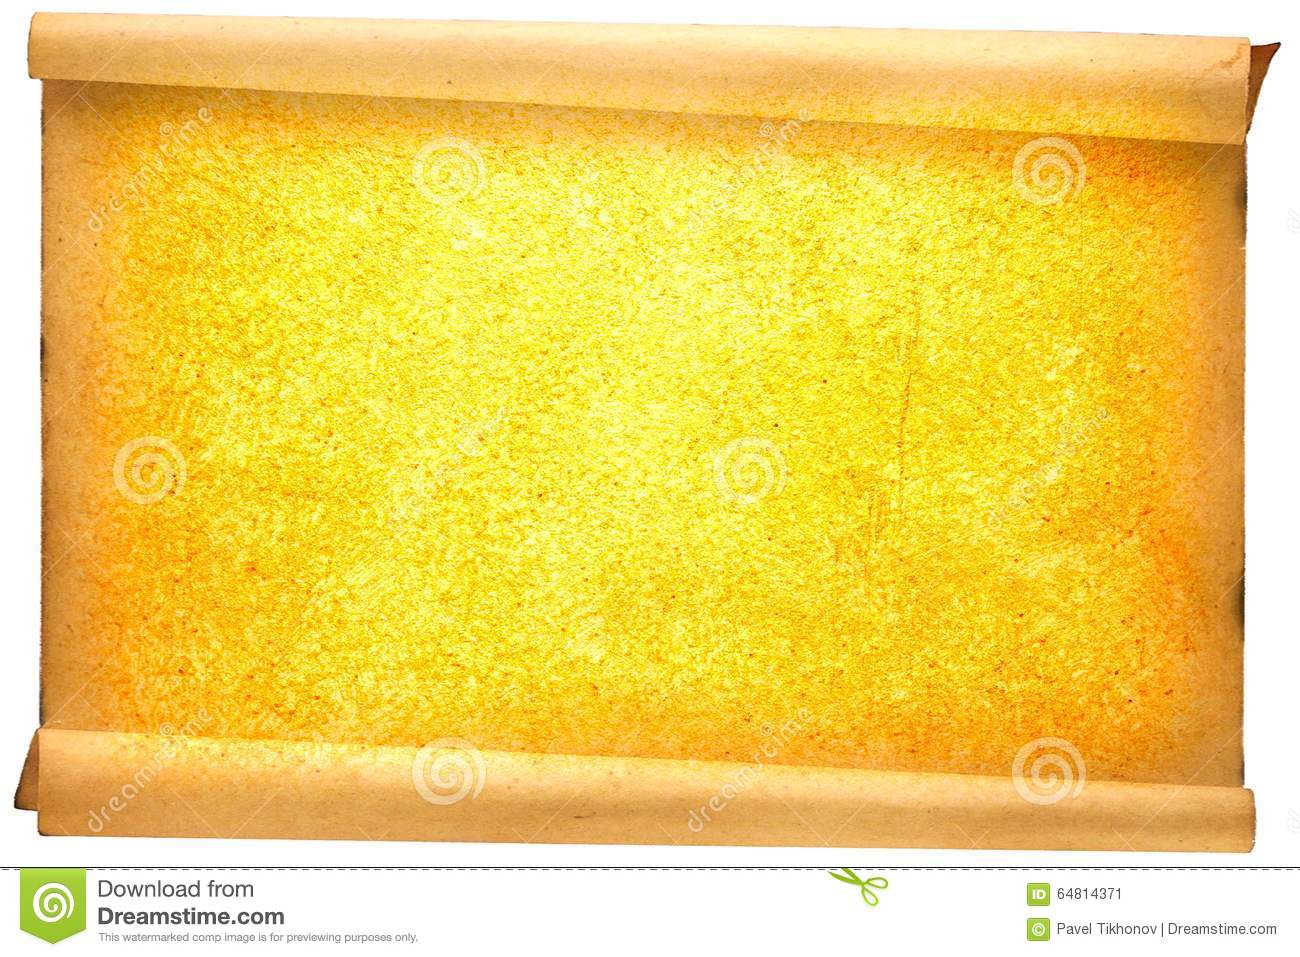 essay on old is gold Lets talk :)  all that glitters is not gold story essay writing – 581365 this topic contains 0 replies,  a3g hasand brief writing, so sheyears old, is young.